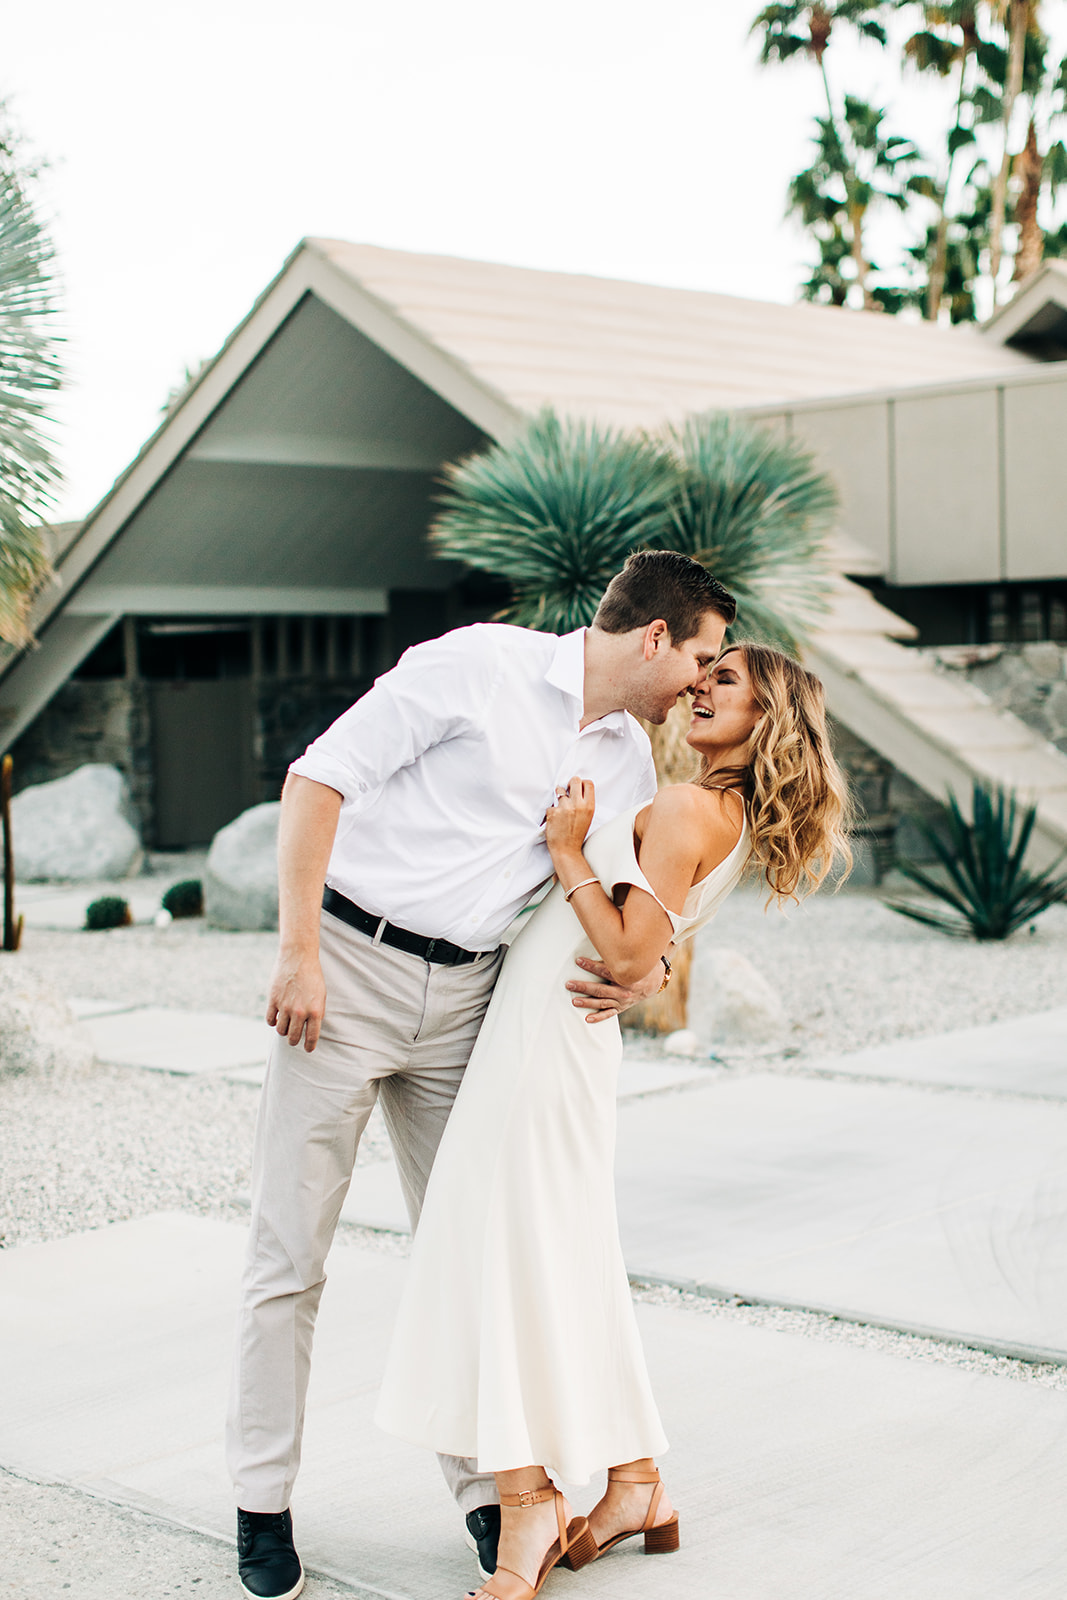 Paulina-Drew_Palm-Springs-Engagement-Photos_Clarisse-Rae_Southern-California-Wedding-Photographer-41